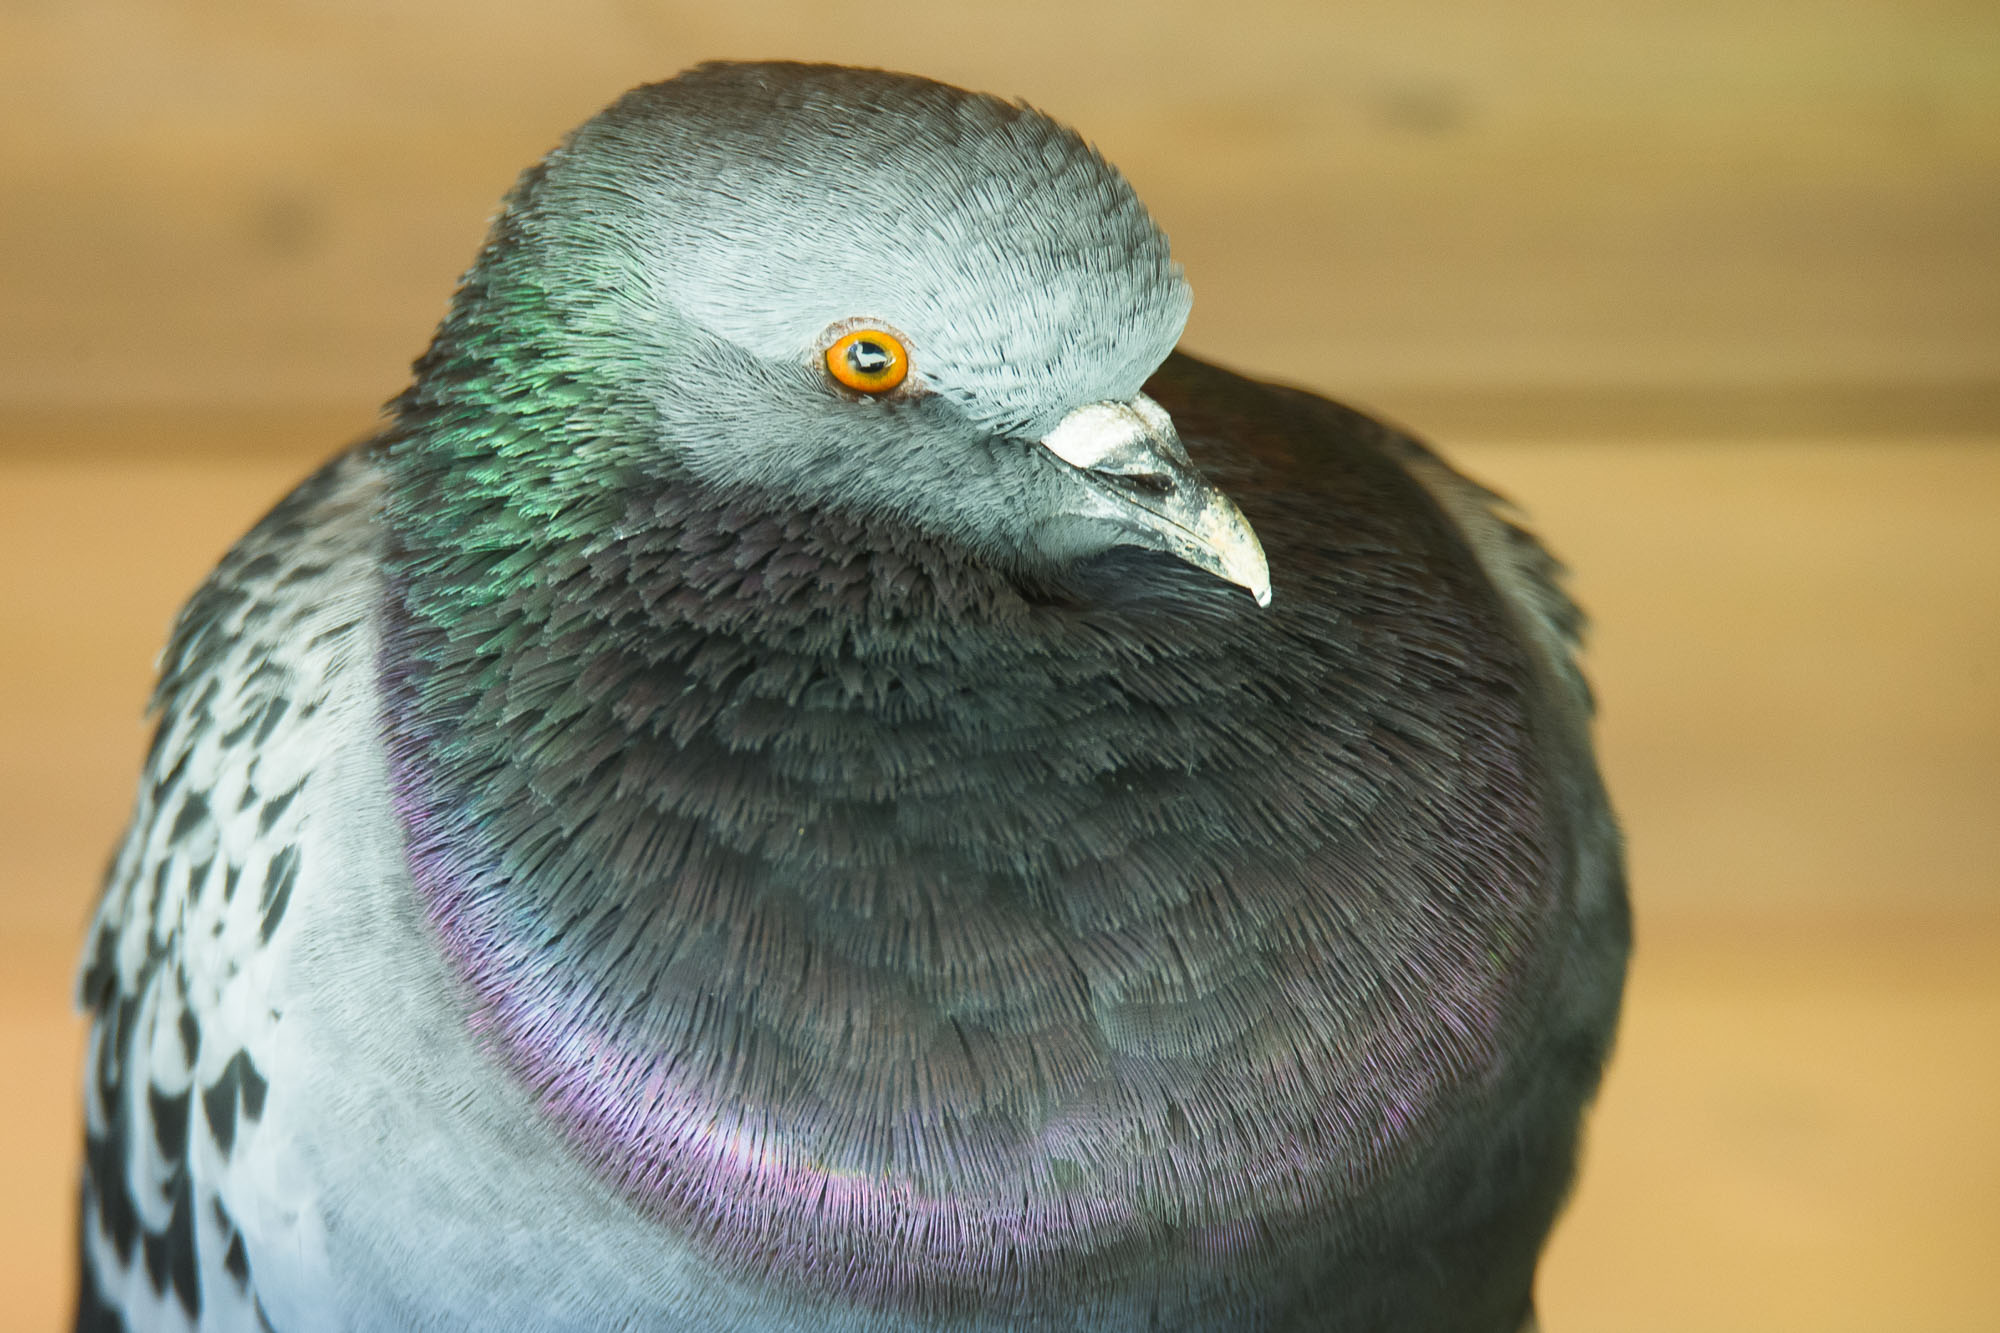 The pigeon sullen 02...